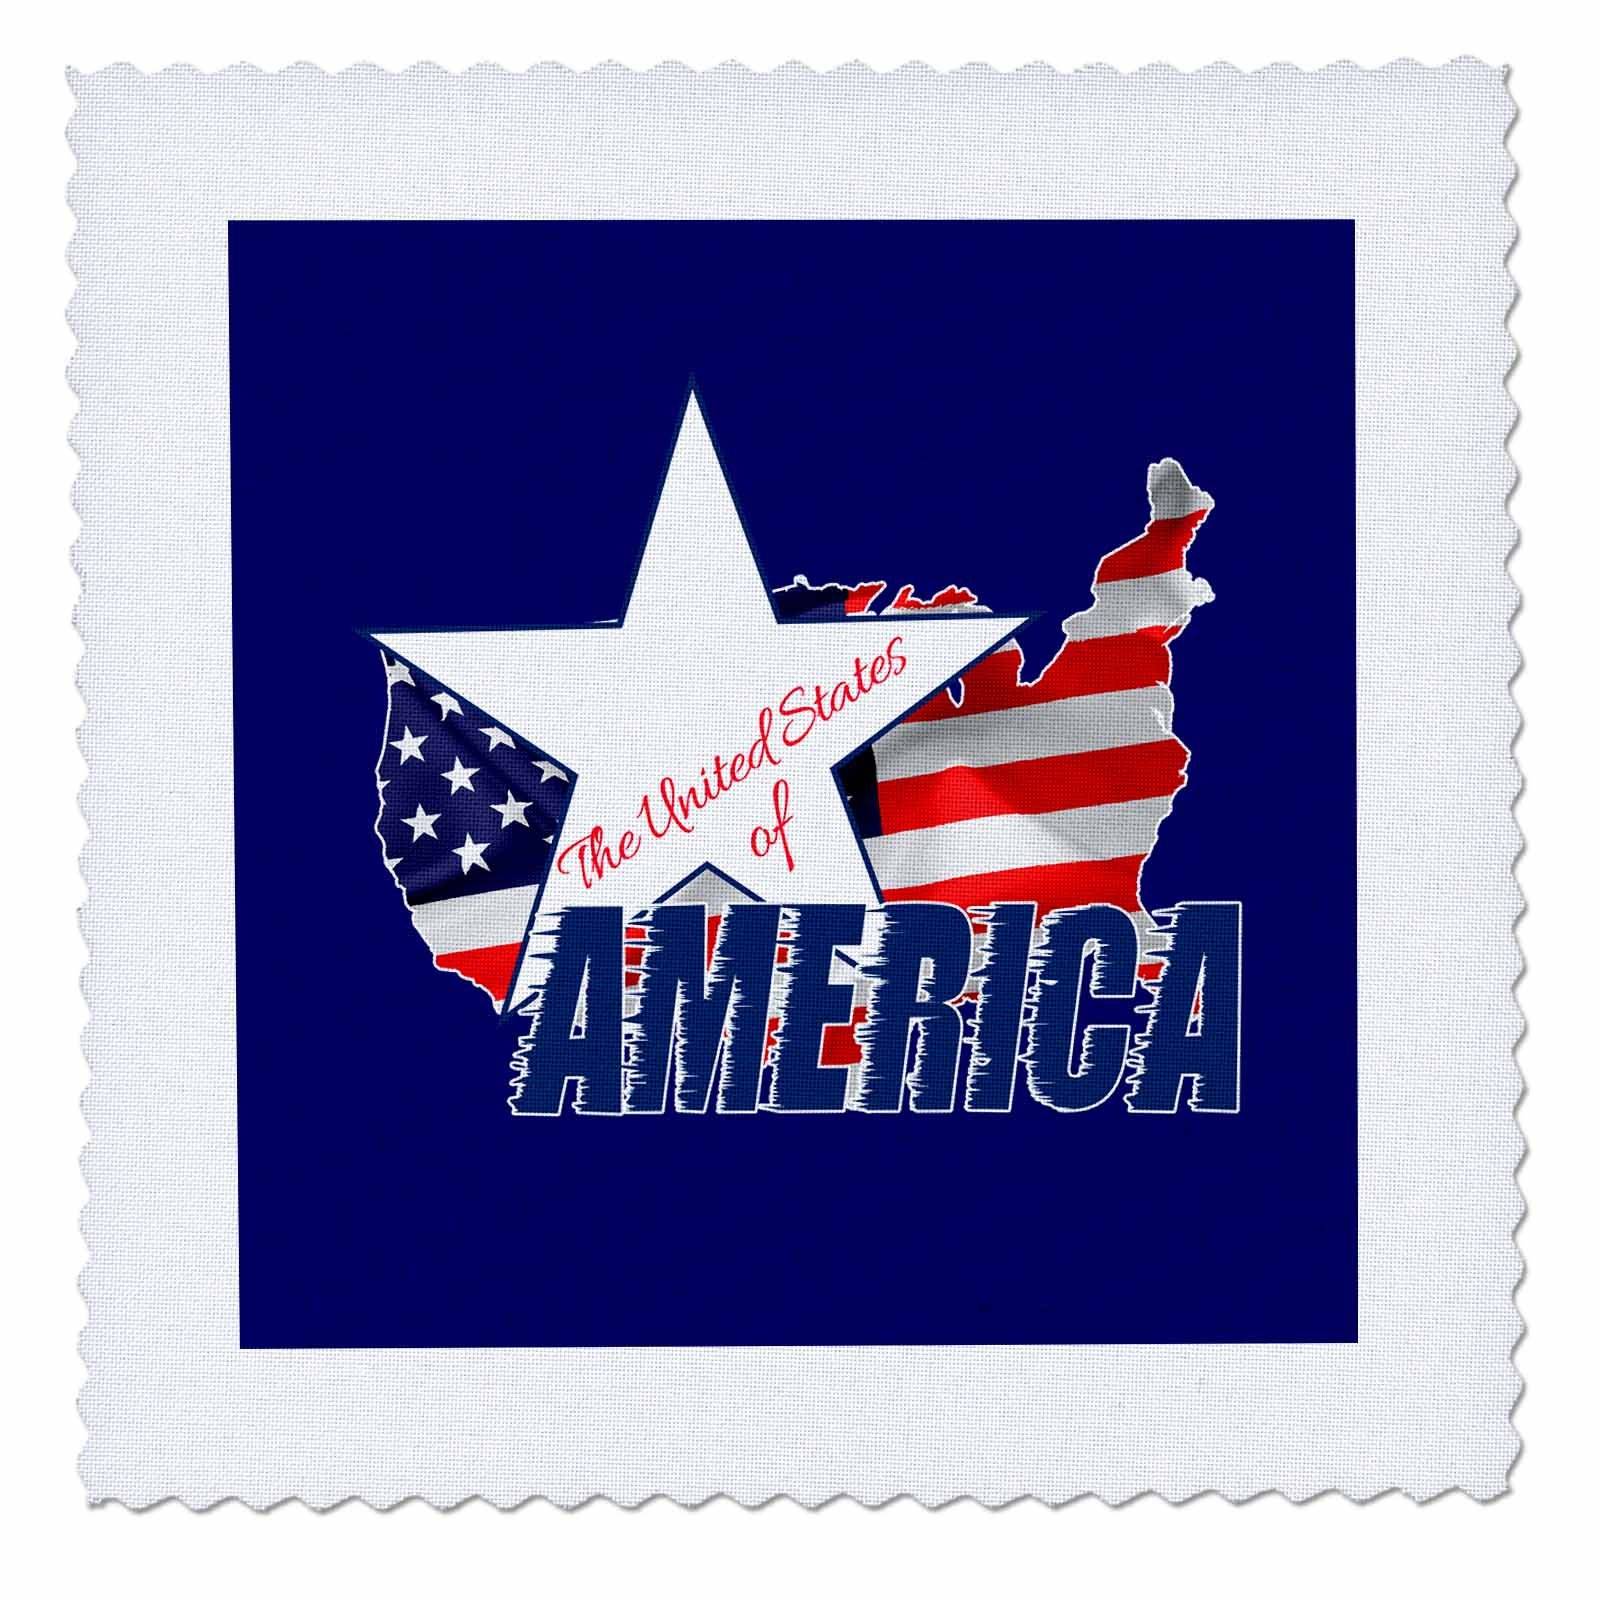 3dRose Alexis Design - America - American Map and Star, text The United States of America on blue - 18x18 inch quilt square (qs_270548_7) by 3dRose